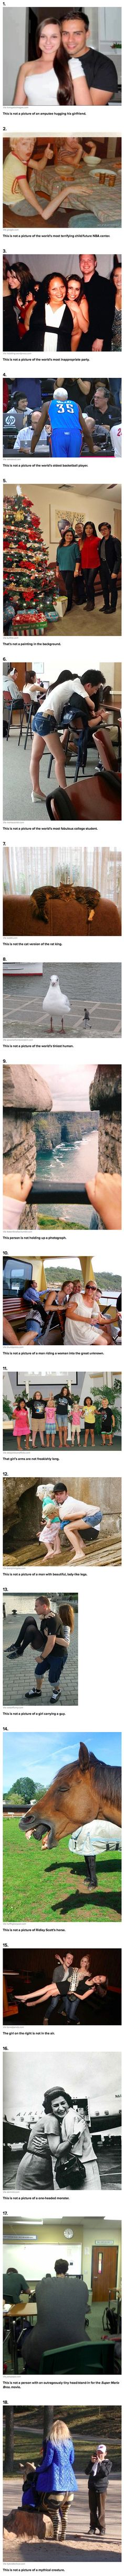 24 Perfectly Timed Pictures That Will Play Tricks with Your Mind - TechEBlog